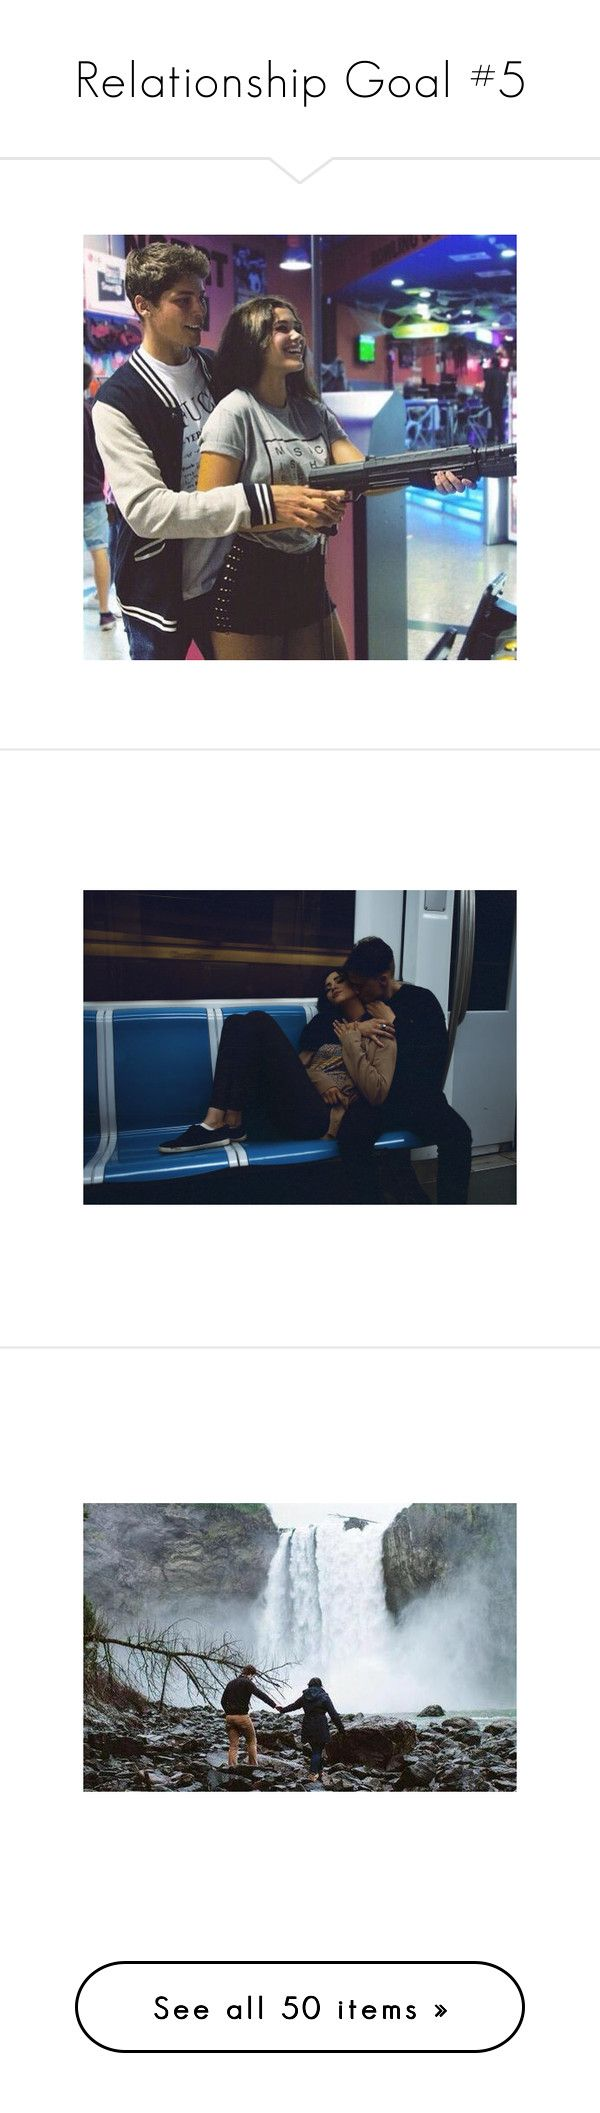 """""""Relationship Goal #5"""" by fiction-928 ❤ liked on Polyvore featuring couple, couples, cute couples, people, pics, pictures, love, backgrounds, cute couple and icons"""